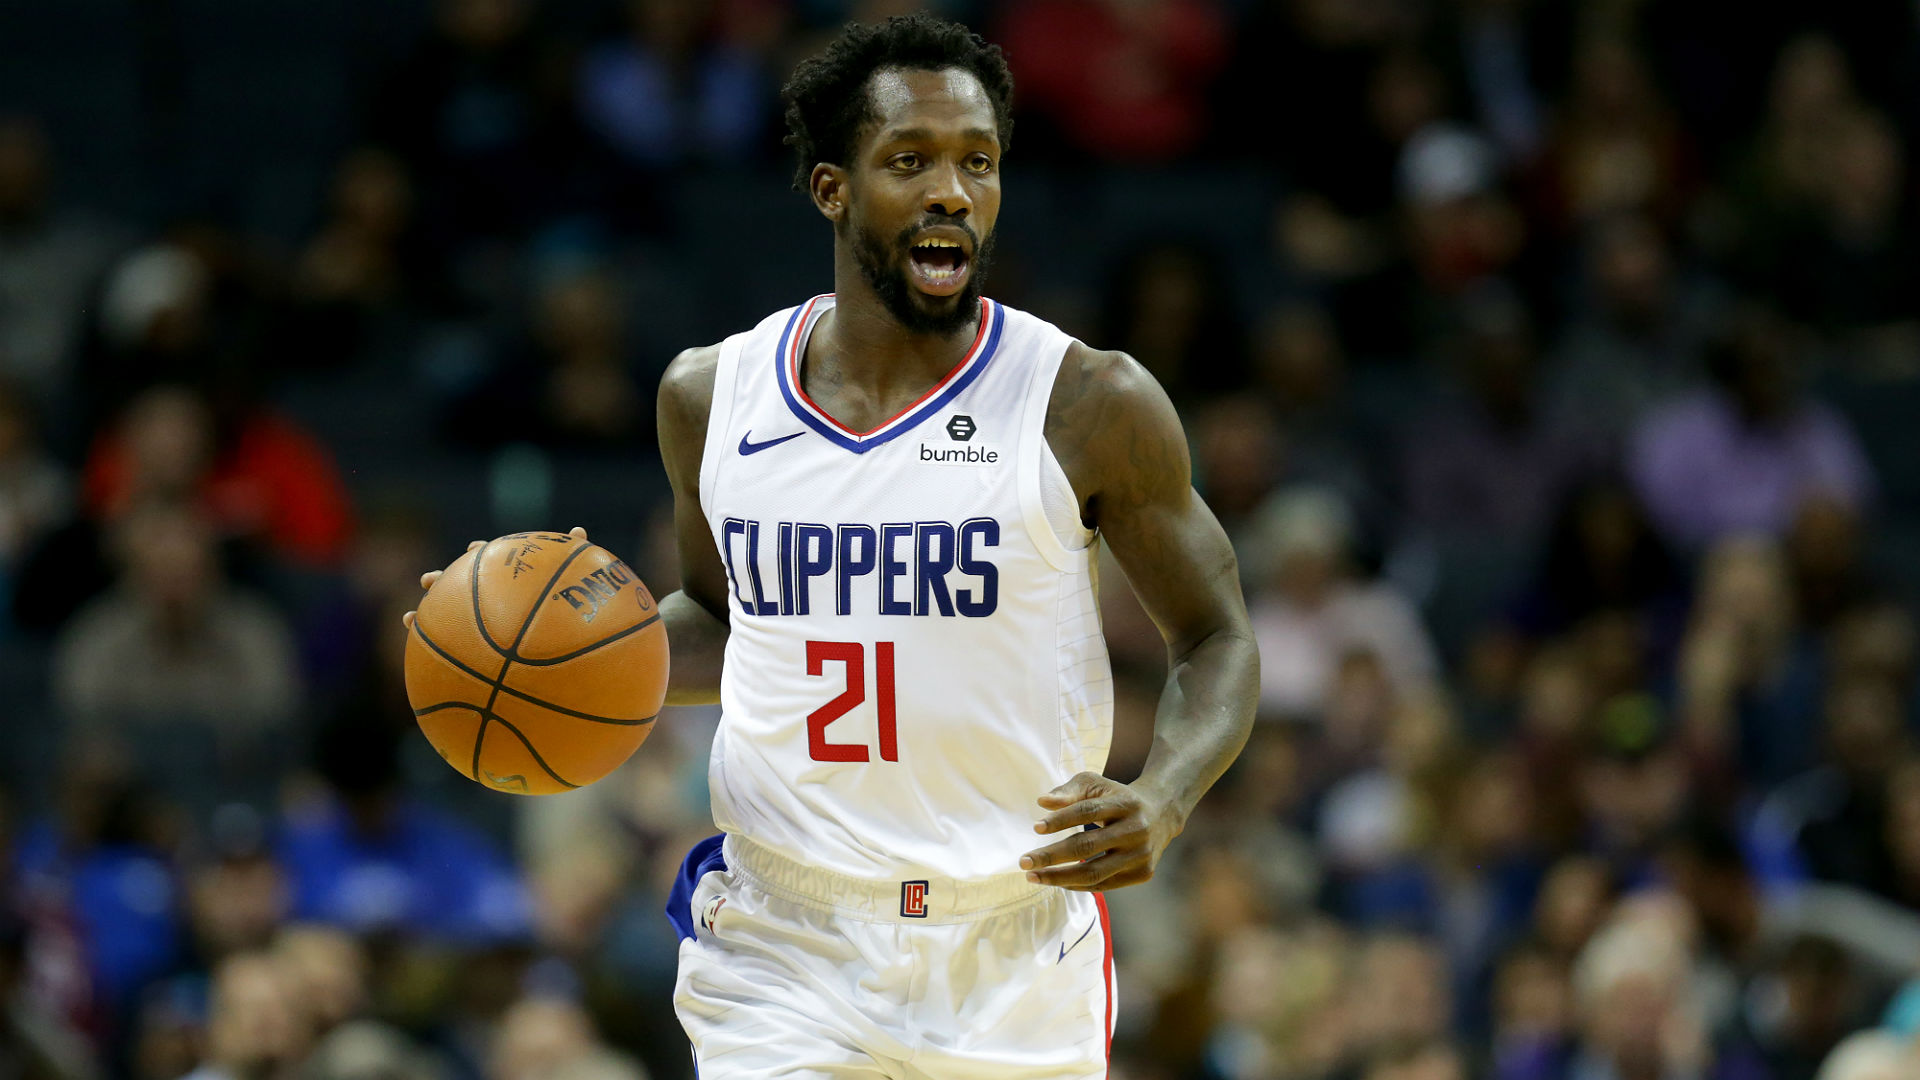 NBA free agency rumors: Are the Mavericks the favorites to sign Patrick Beverley?